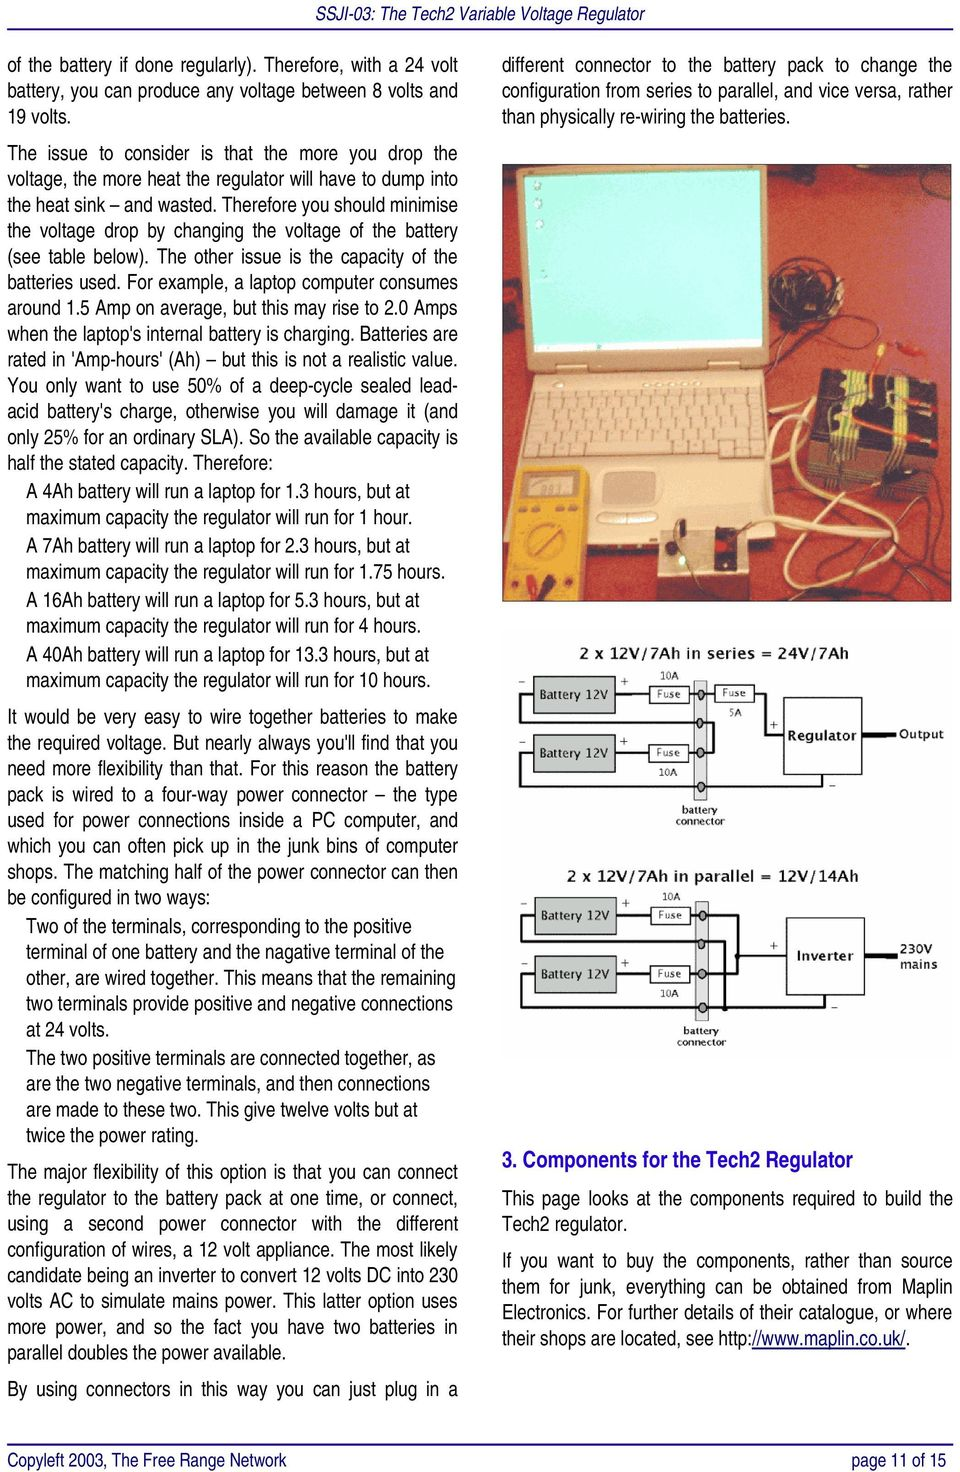 Ssji 03 The Tech2 Variable Voltage Regulator Pdf Circuit With L200 Therefore You Should Minimise Drop By Changing Of Battery See